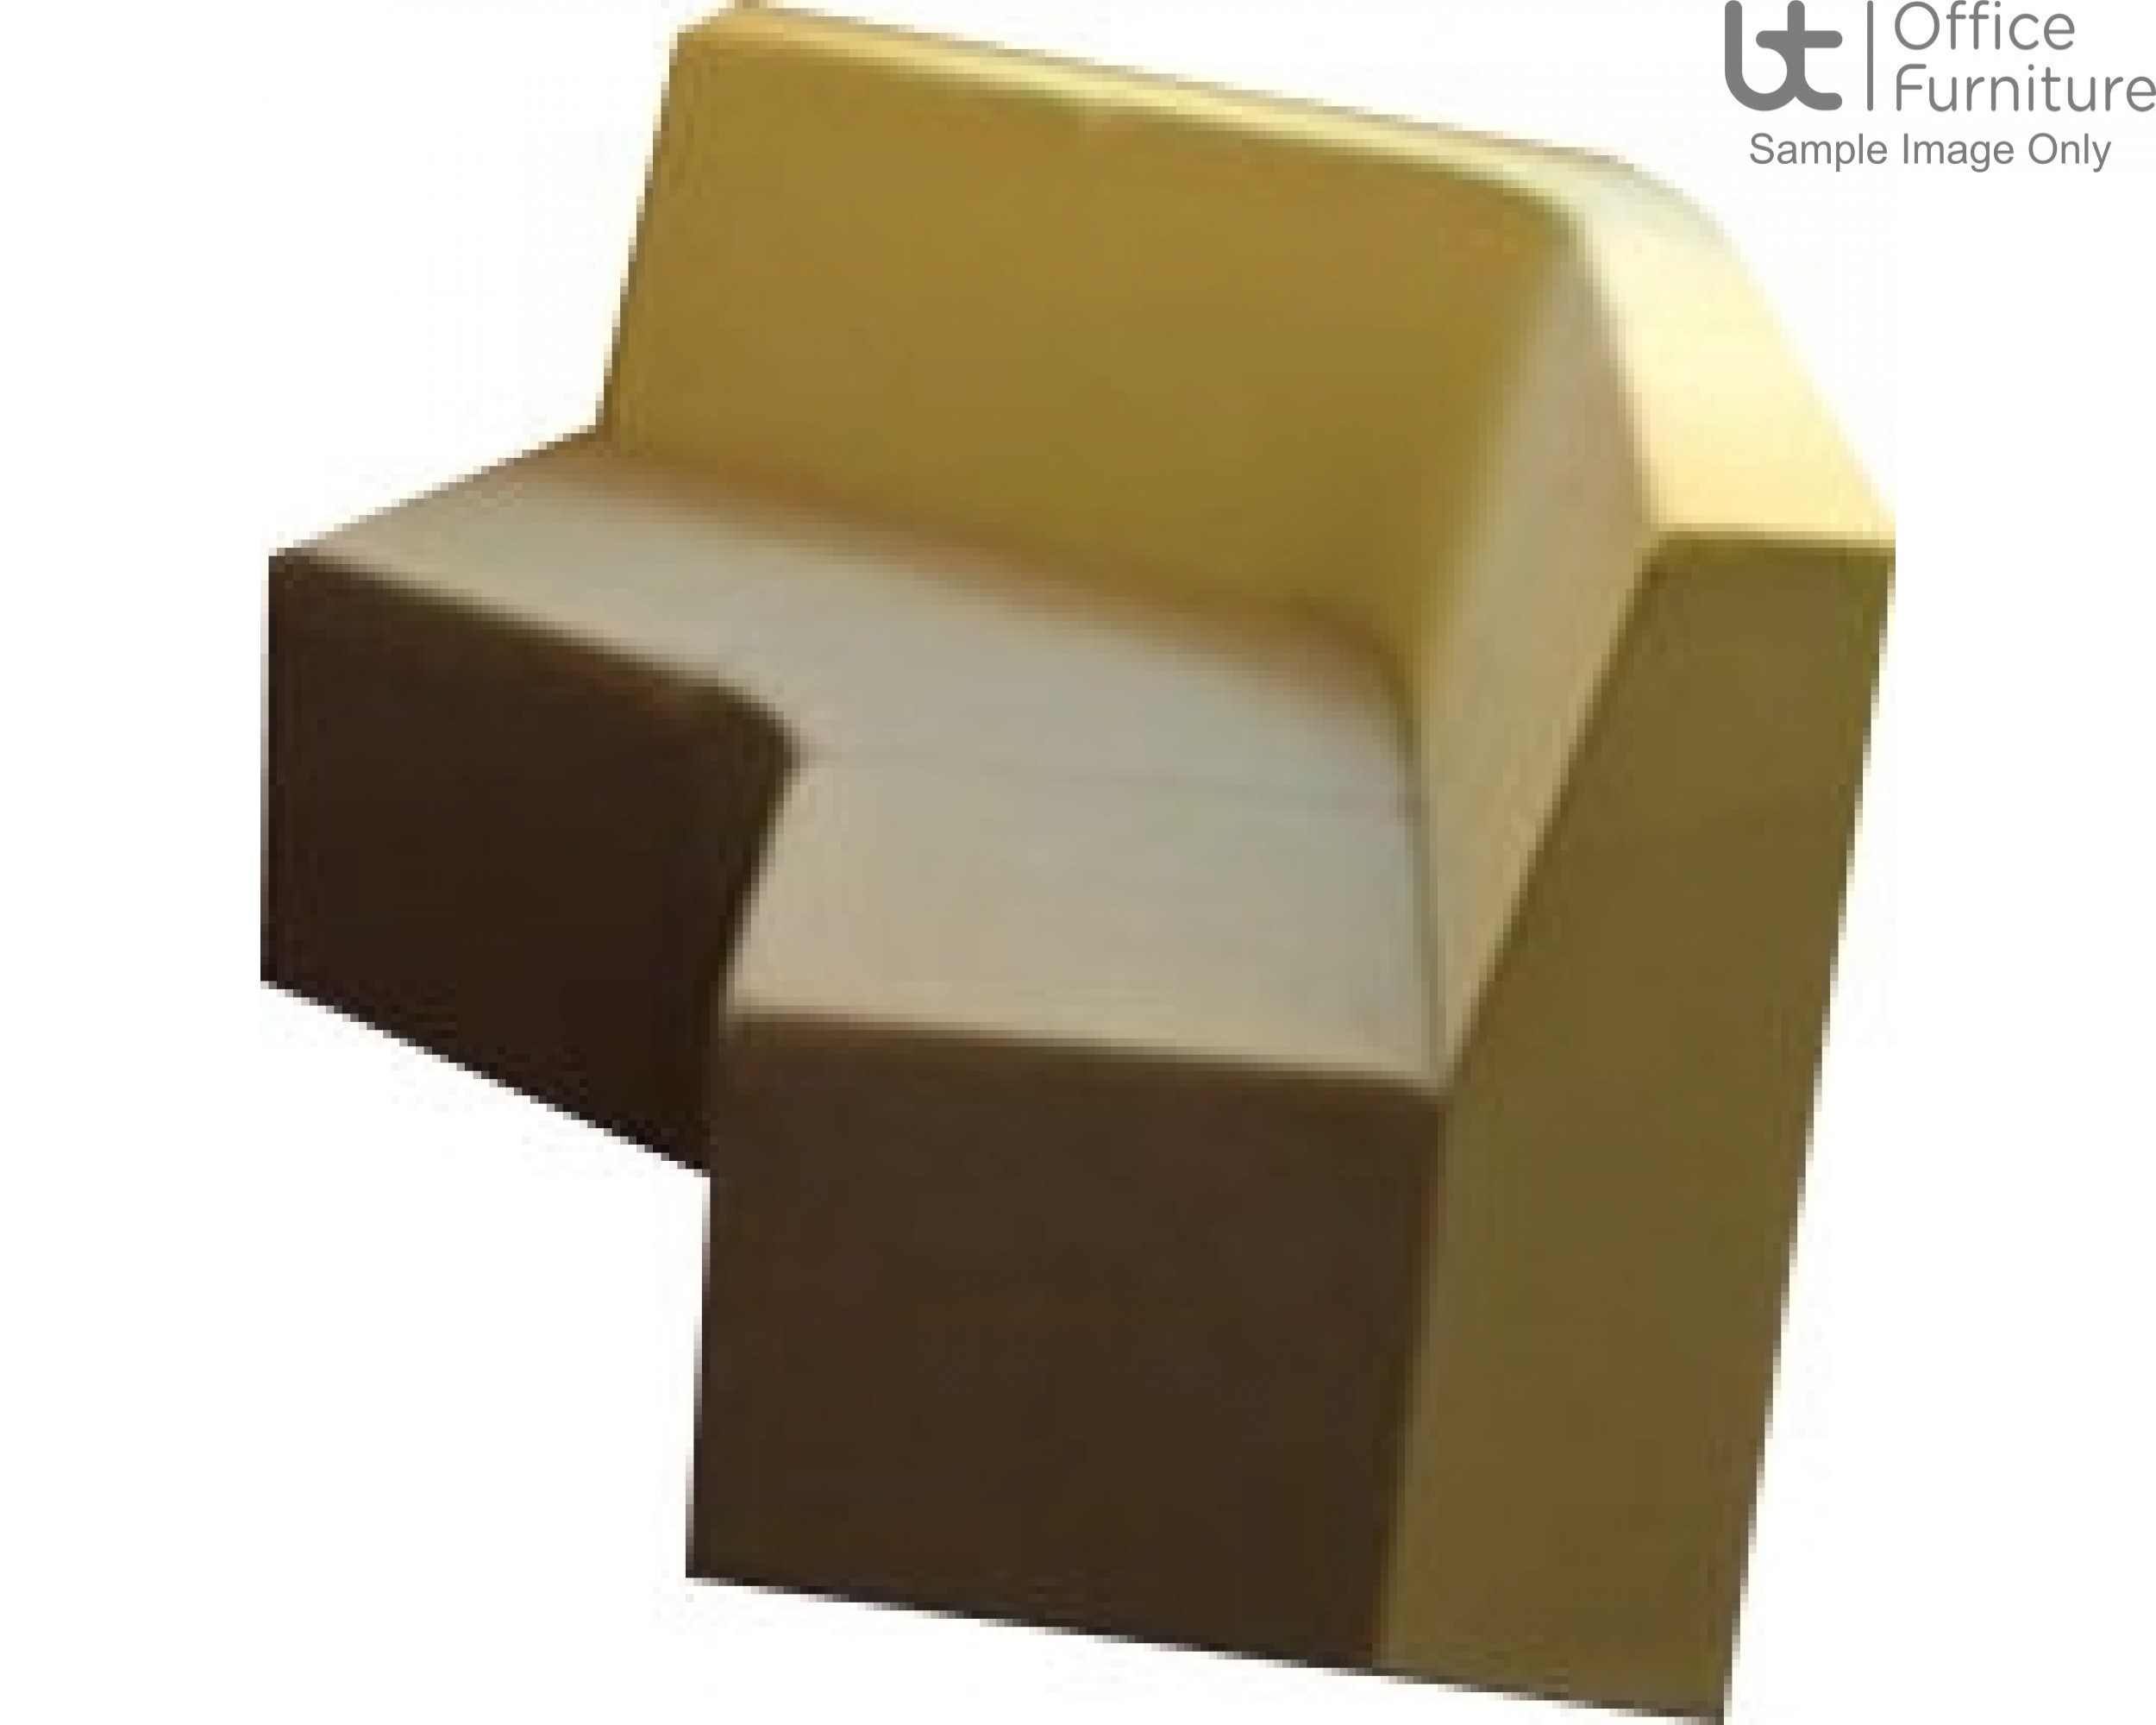 Verco Soft Seating - Box-It Landscape 120 Degree Unit with a Single Back